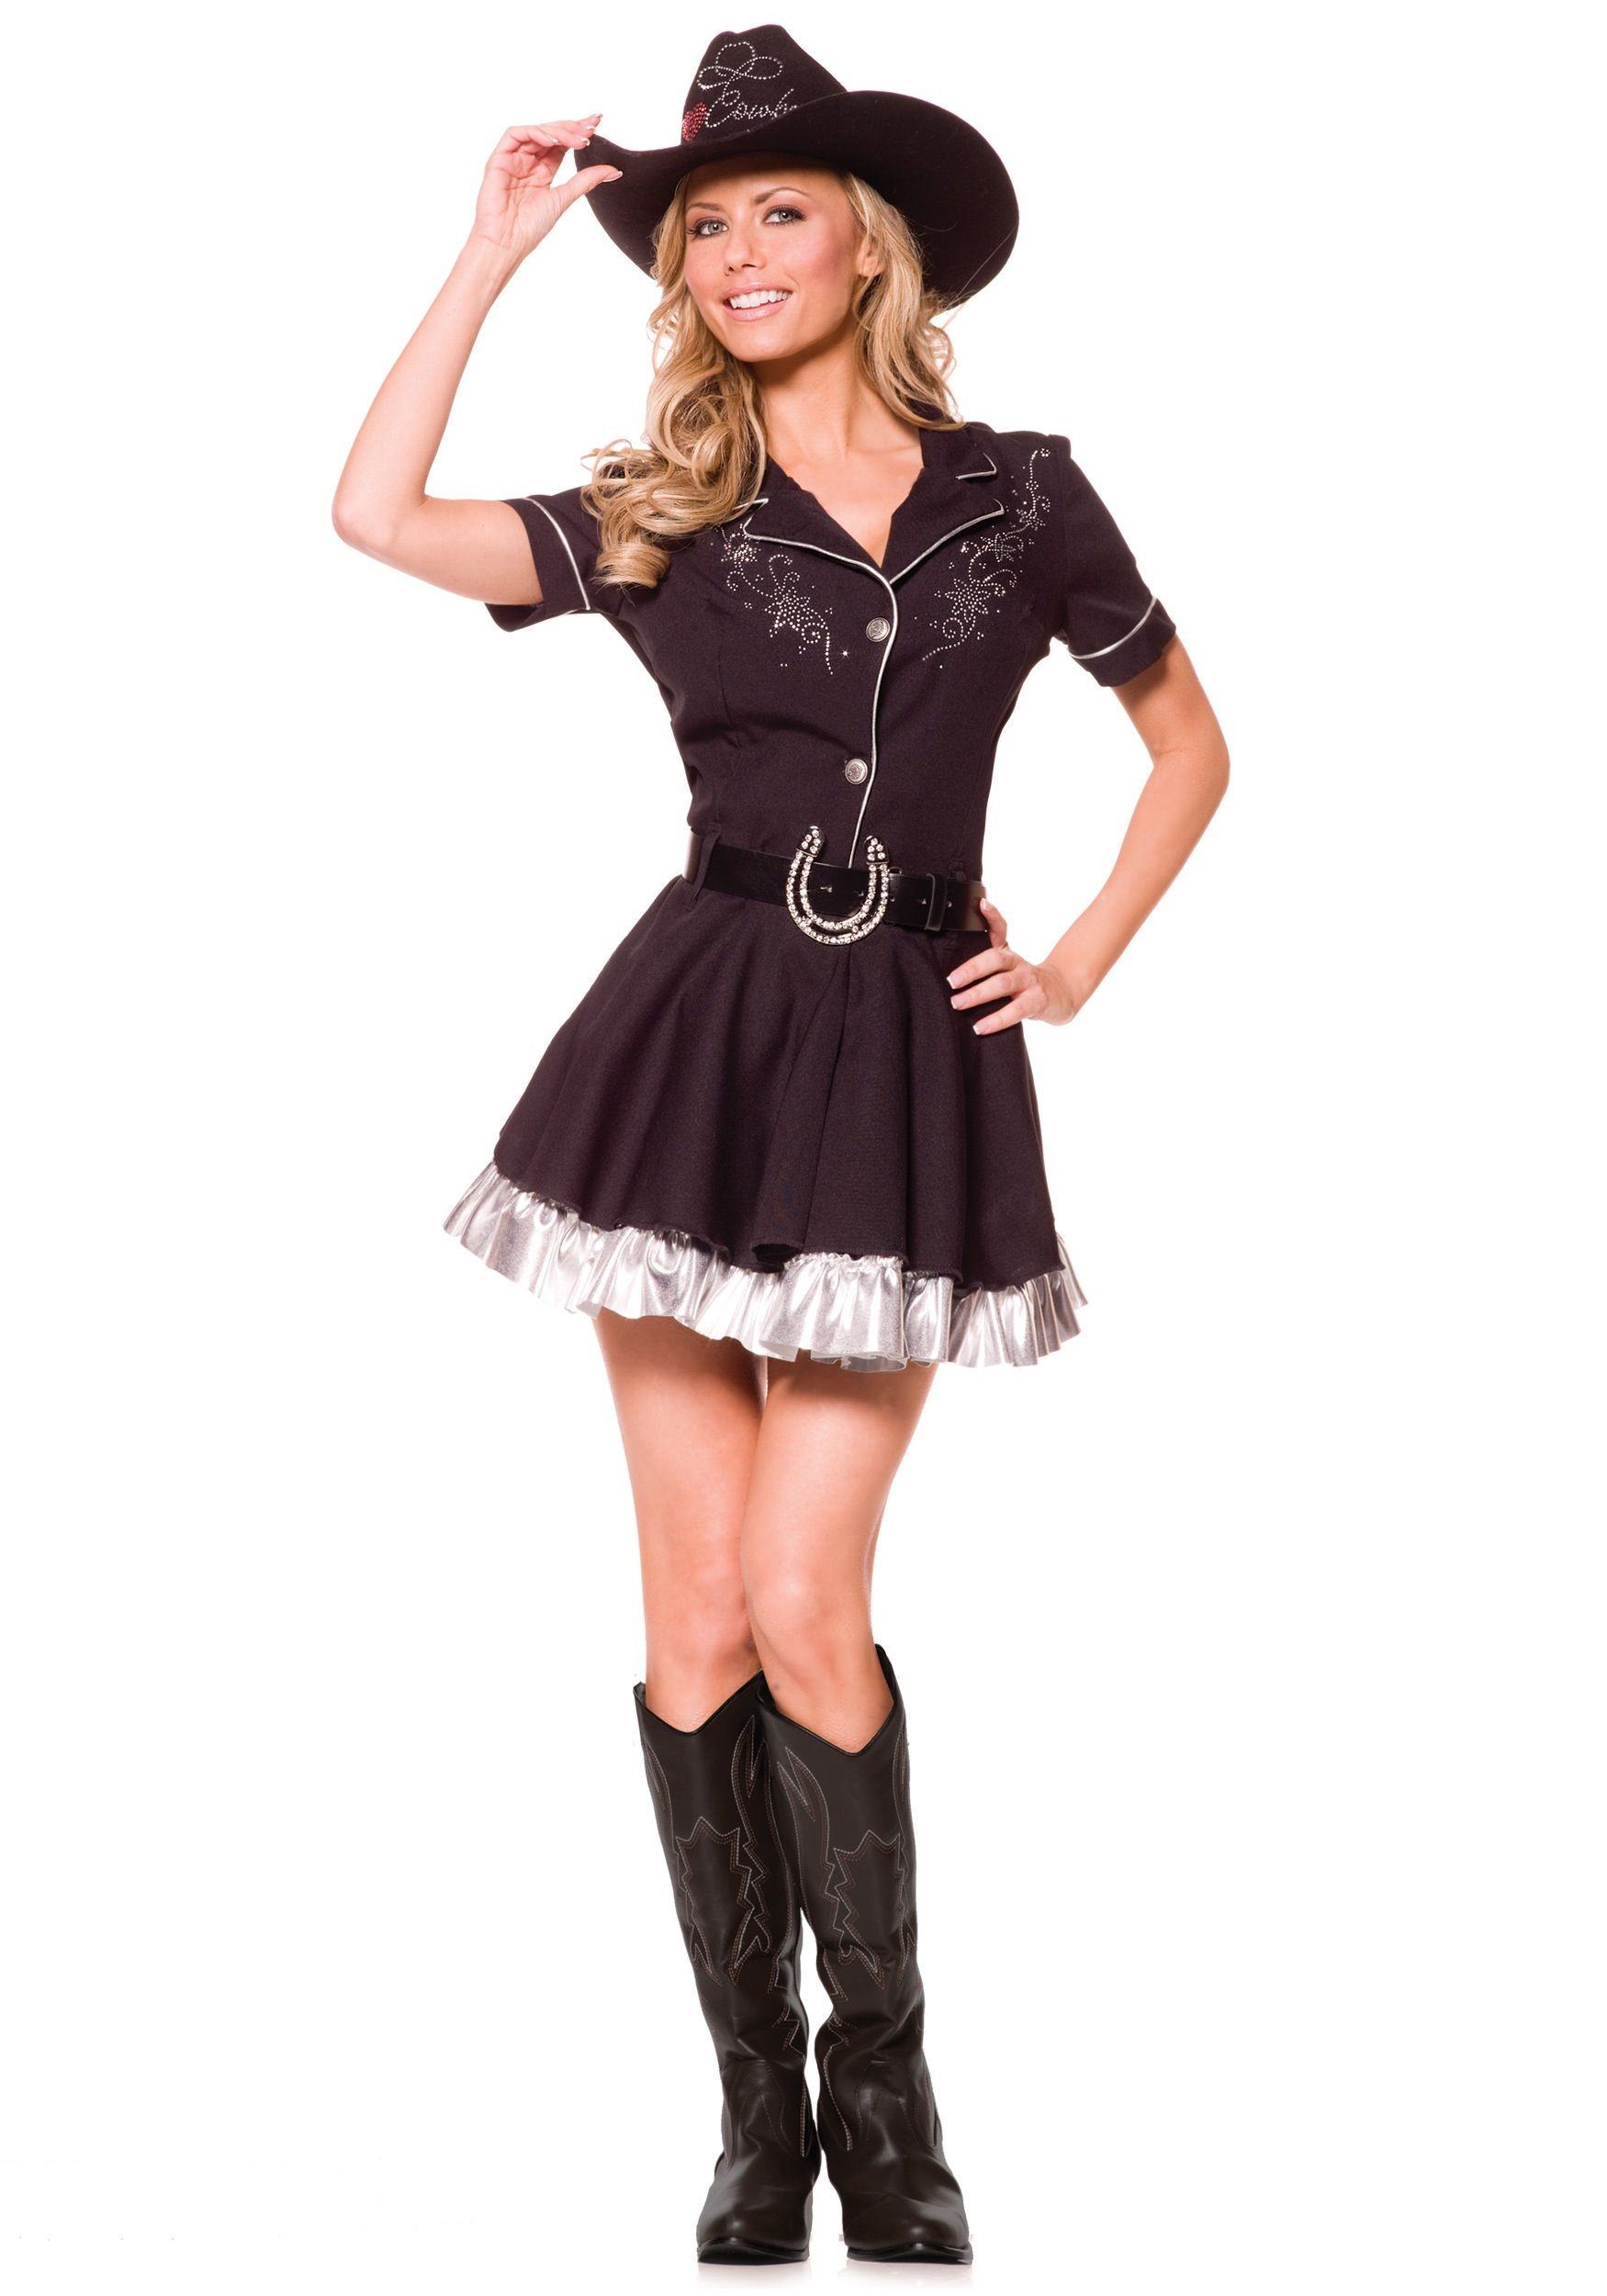 Home ladies costumes rodeo gal costume - Woman Costumes Adult Rhinestone Cowgirl Costume